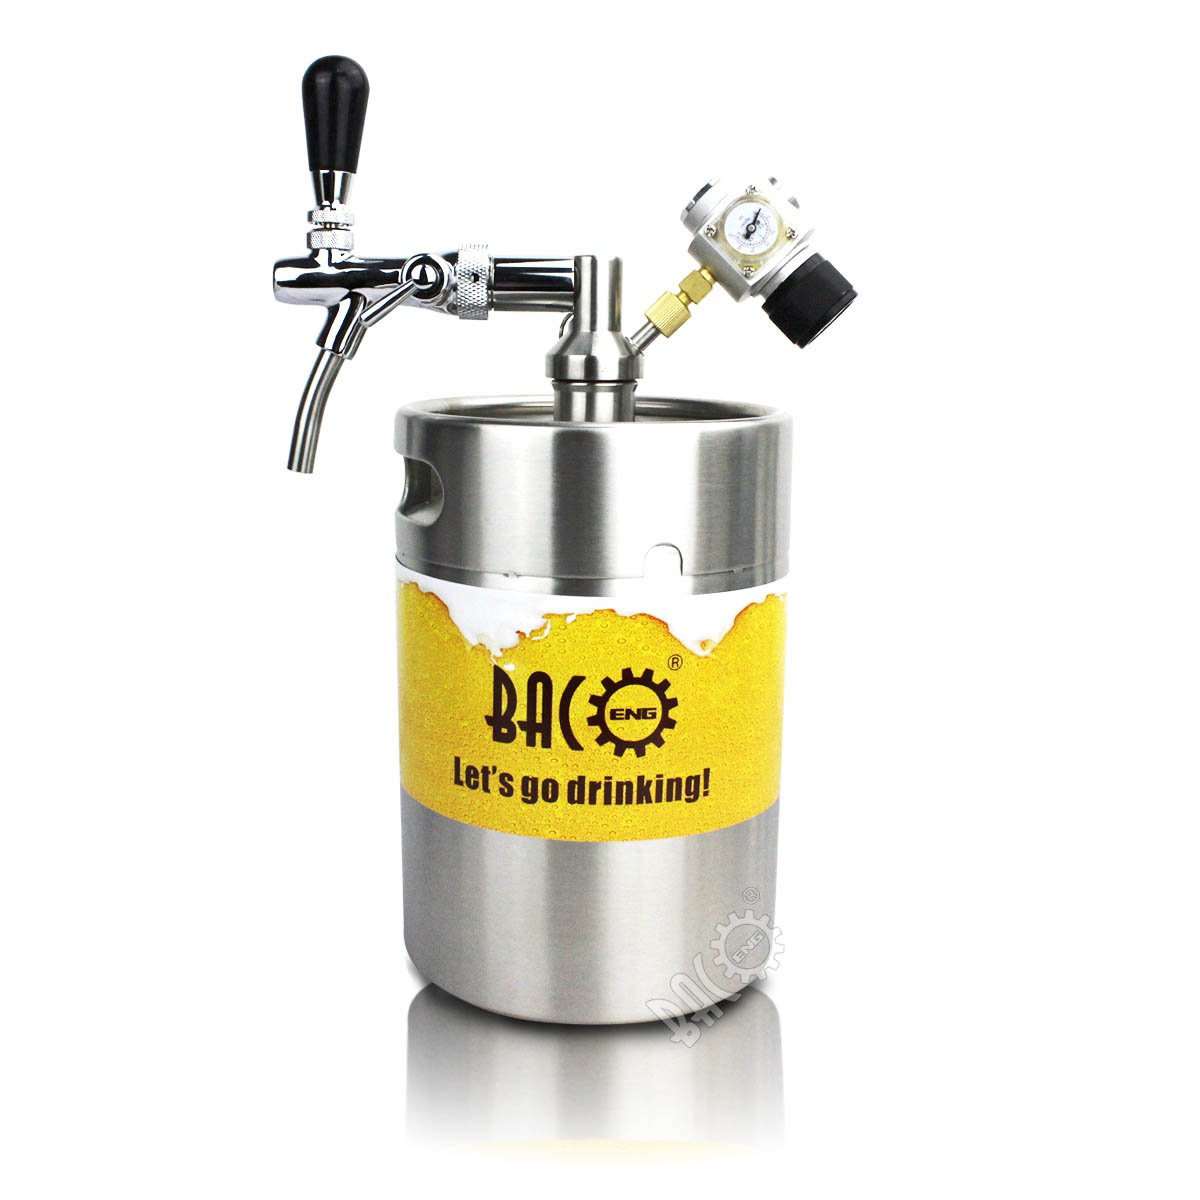 BACOENG 5L Pressurized Keg Growler with Heavy Duty CO2 Secondary Regulator and Flow Control Faucet Baco Engineering